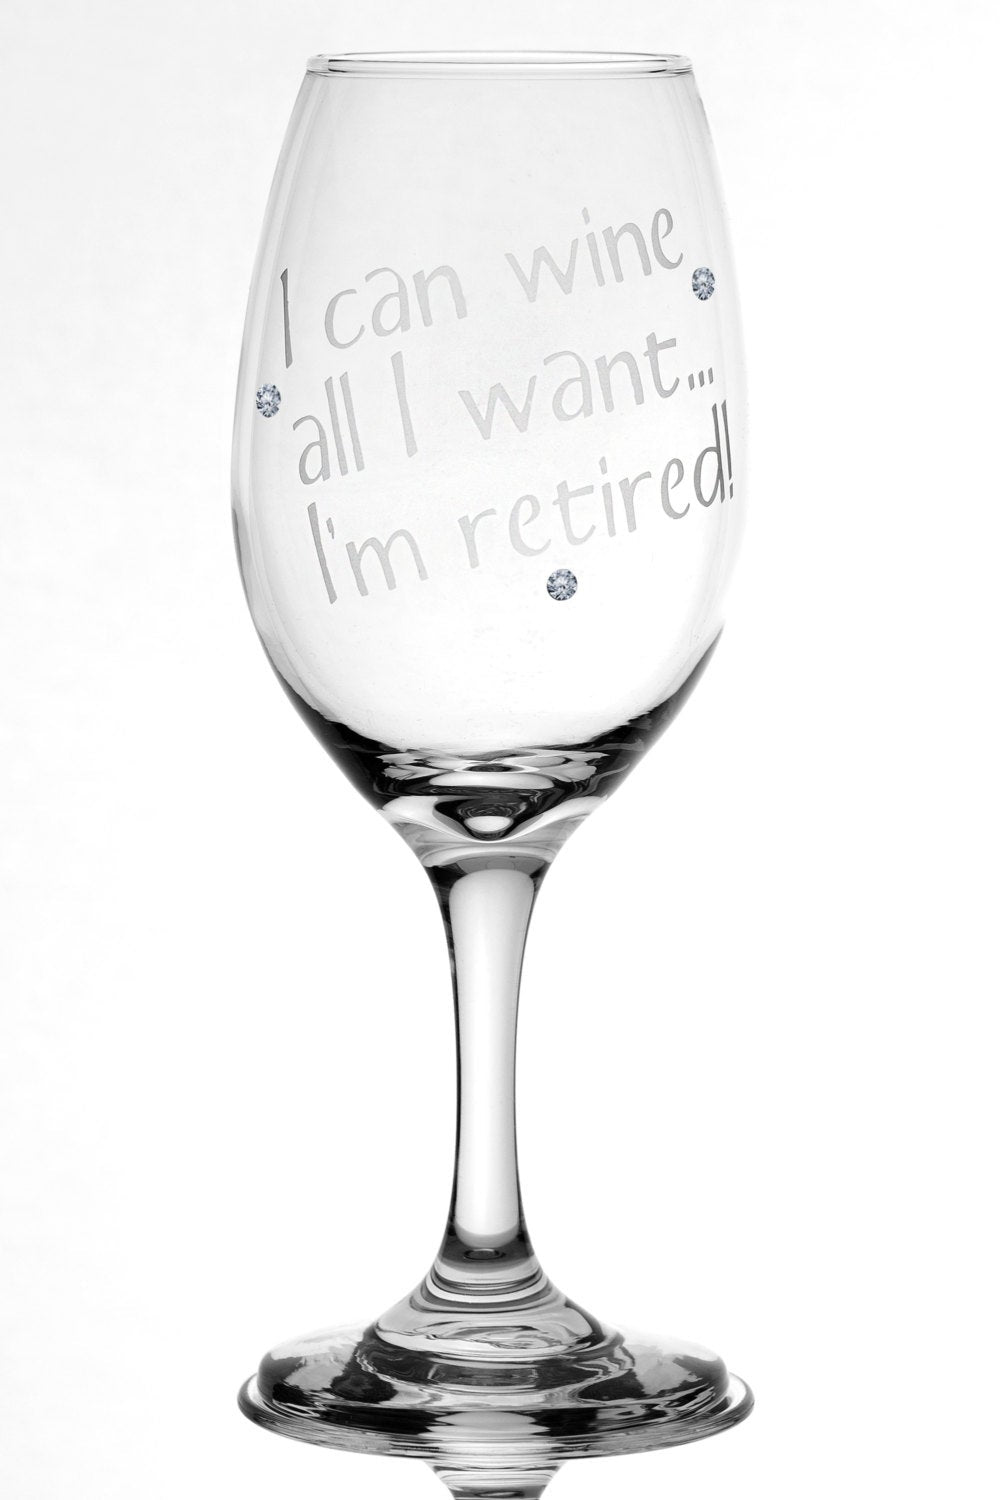 Retirement Gift I Can Wine All I Want - I'm Retired Personalized 13 oz stem wine glass | Funny Retirement Gift | Retirement Wine Glass